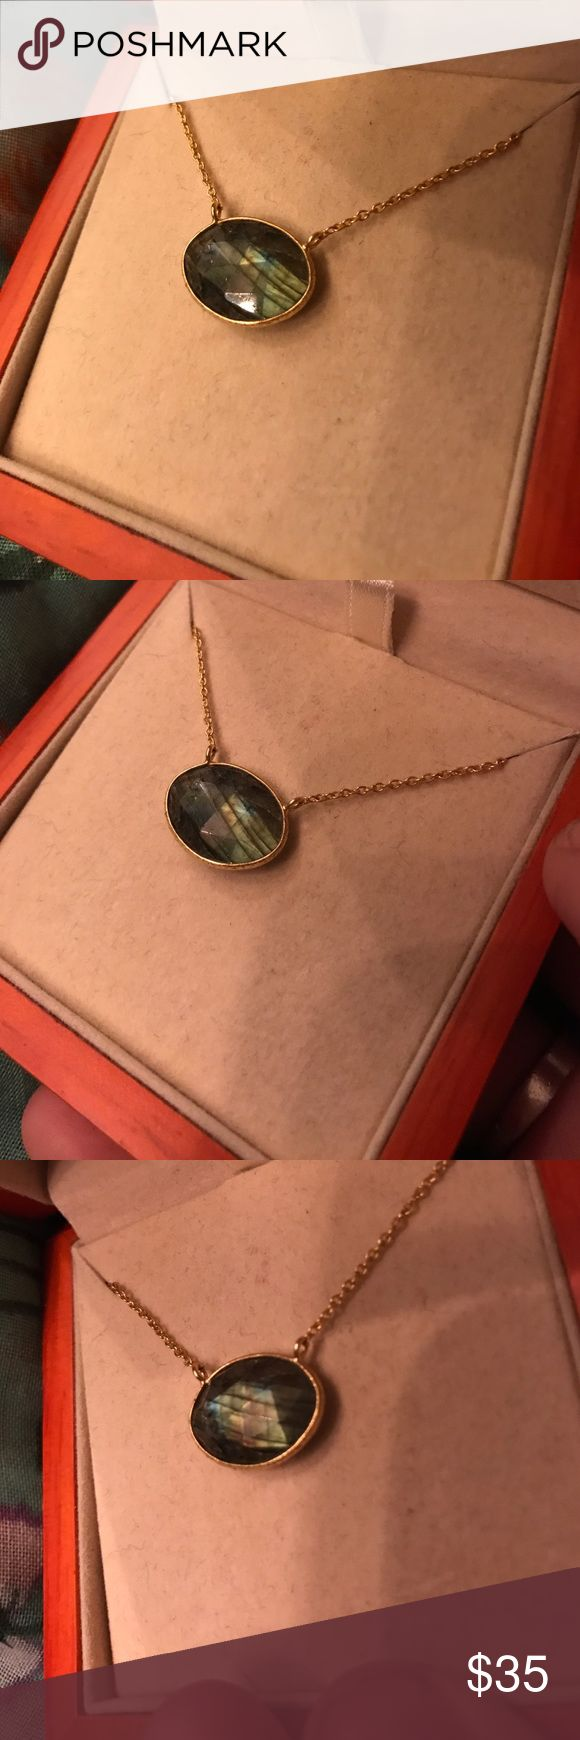 Beautiful Labradorite Necklace I wish I could post a video of this. If you've ever worked with labradorite, you probably know how hard it is to capture the flash on camera. This is stunning and still in the original box. Open to offers/bundles. Argento Vivo Jewelry Necklaces